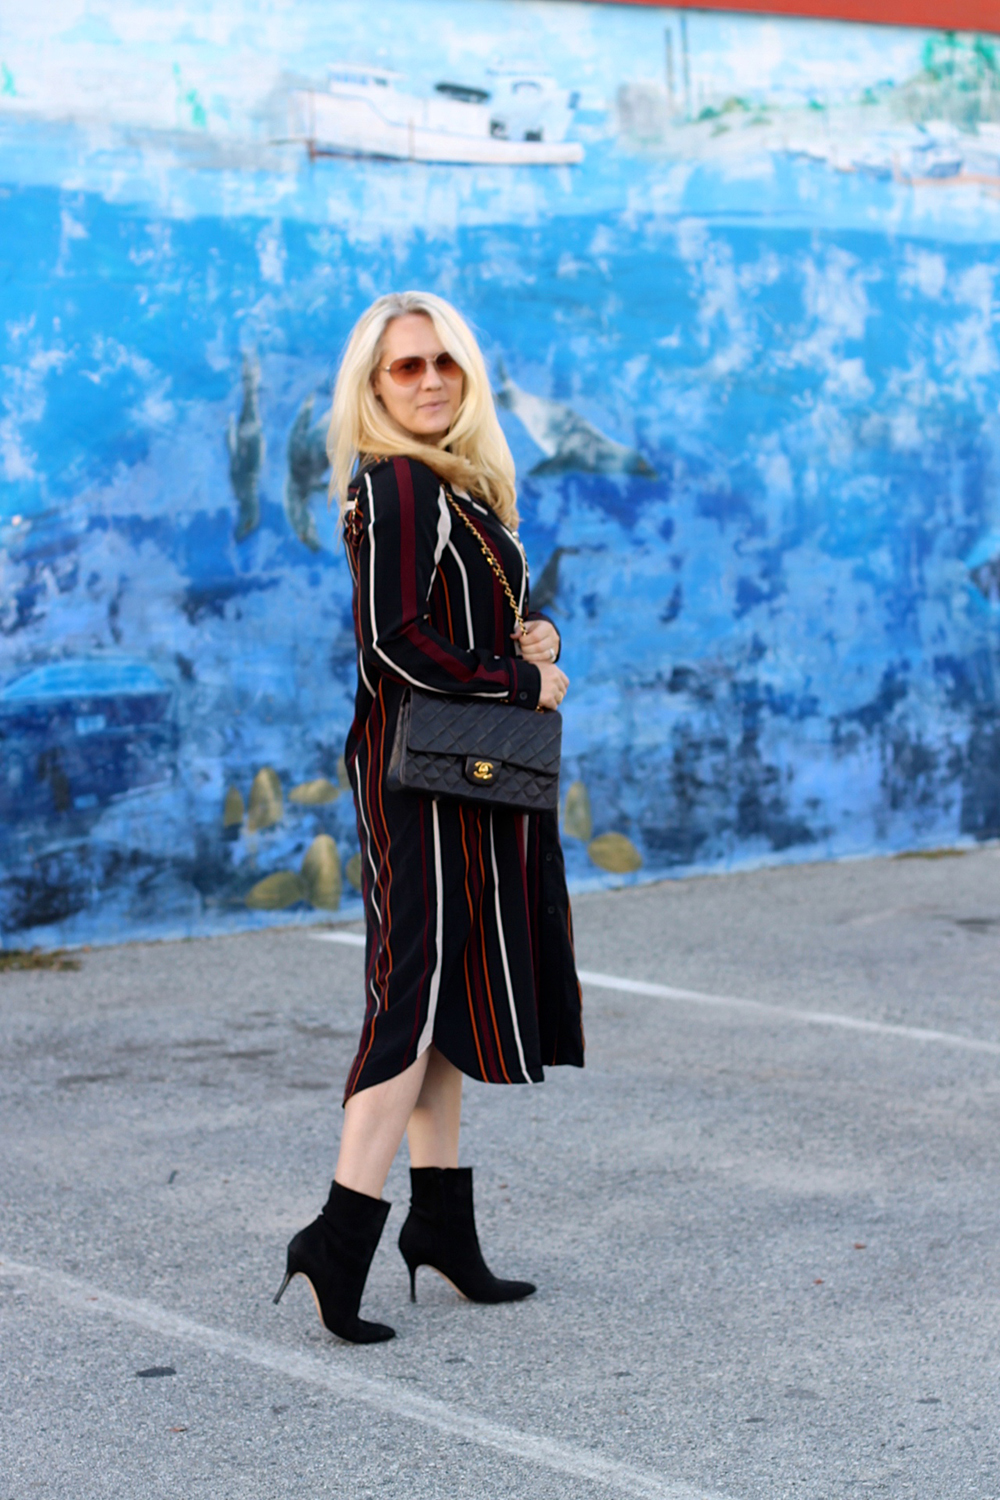 who-what-wear-pajama-shirtdress-target-style-fall-fashion-outfit-inspiration-bay-area-fashion-blogger-have-need-want-2